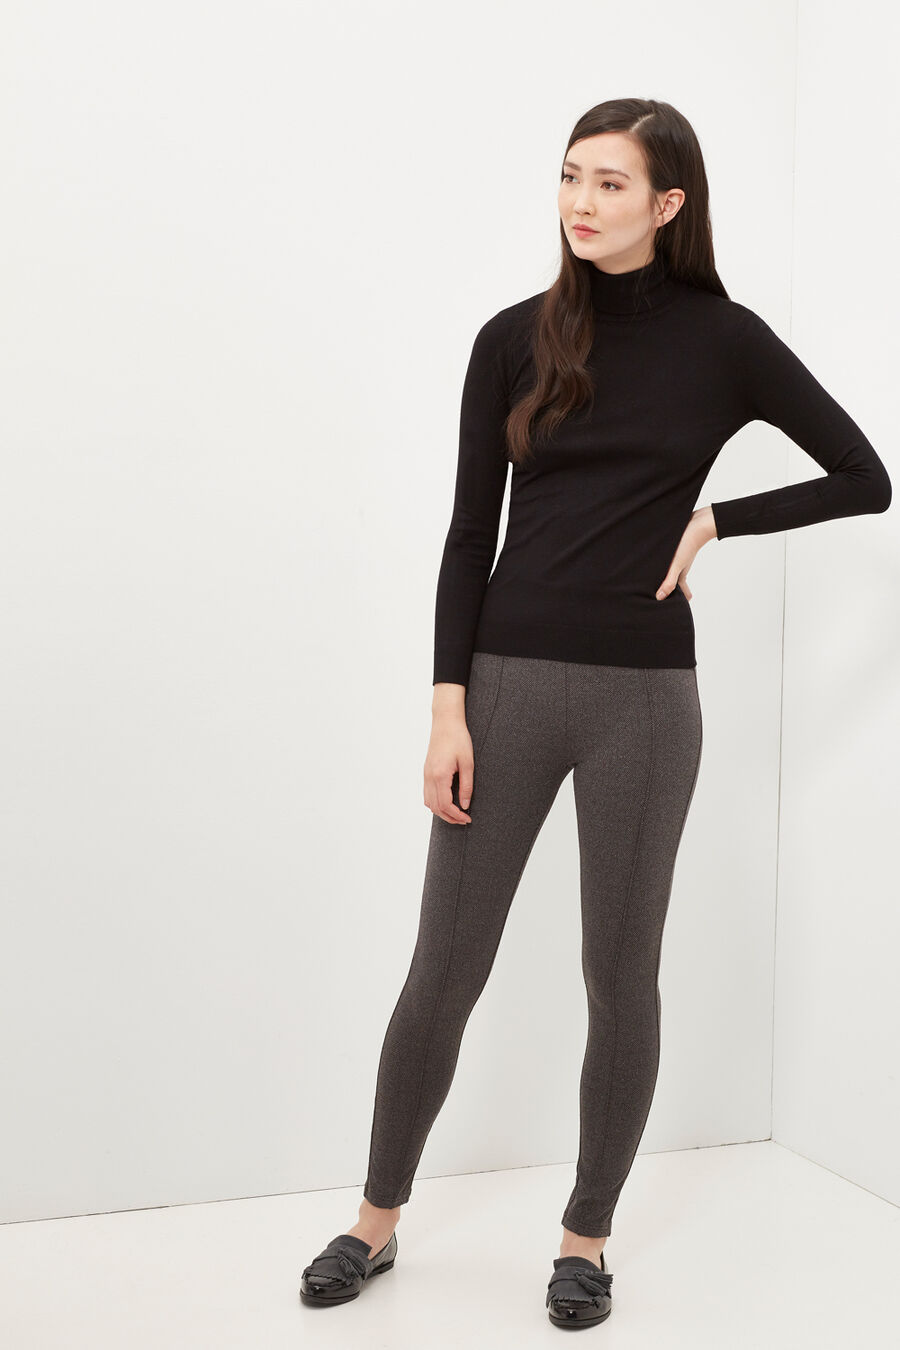 Herringbone leggings